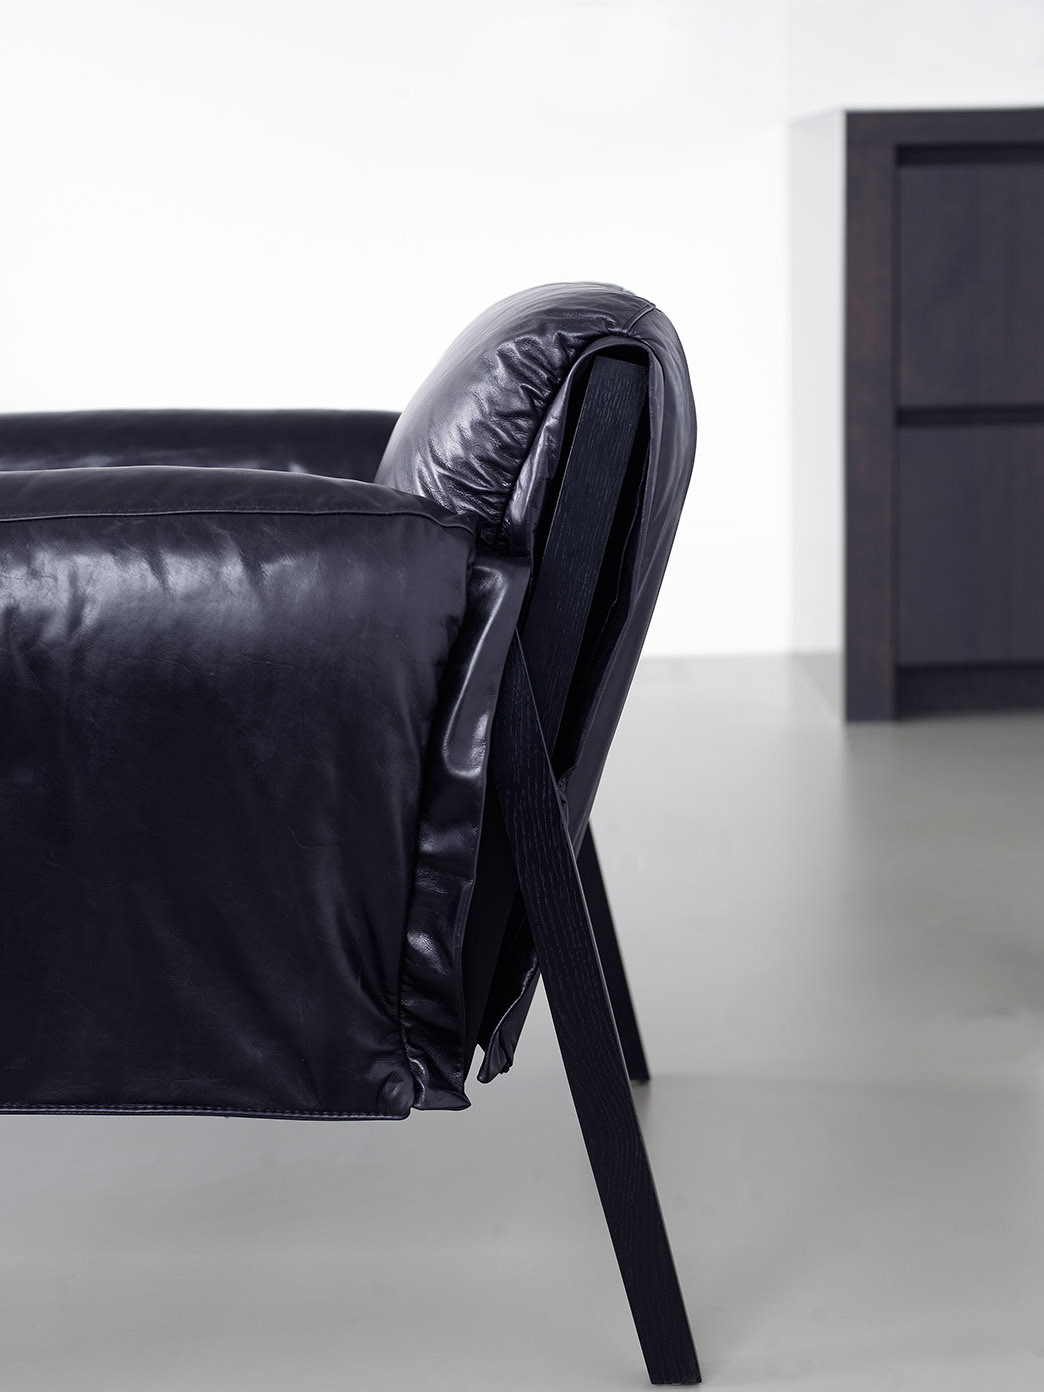 KENT chair at canal apartment